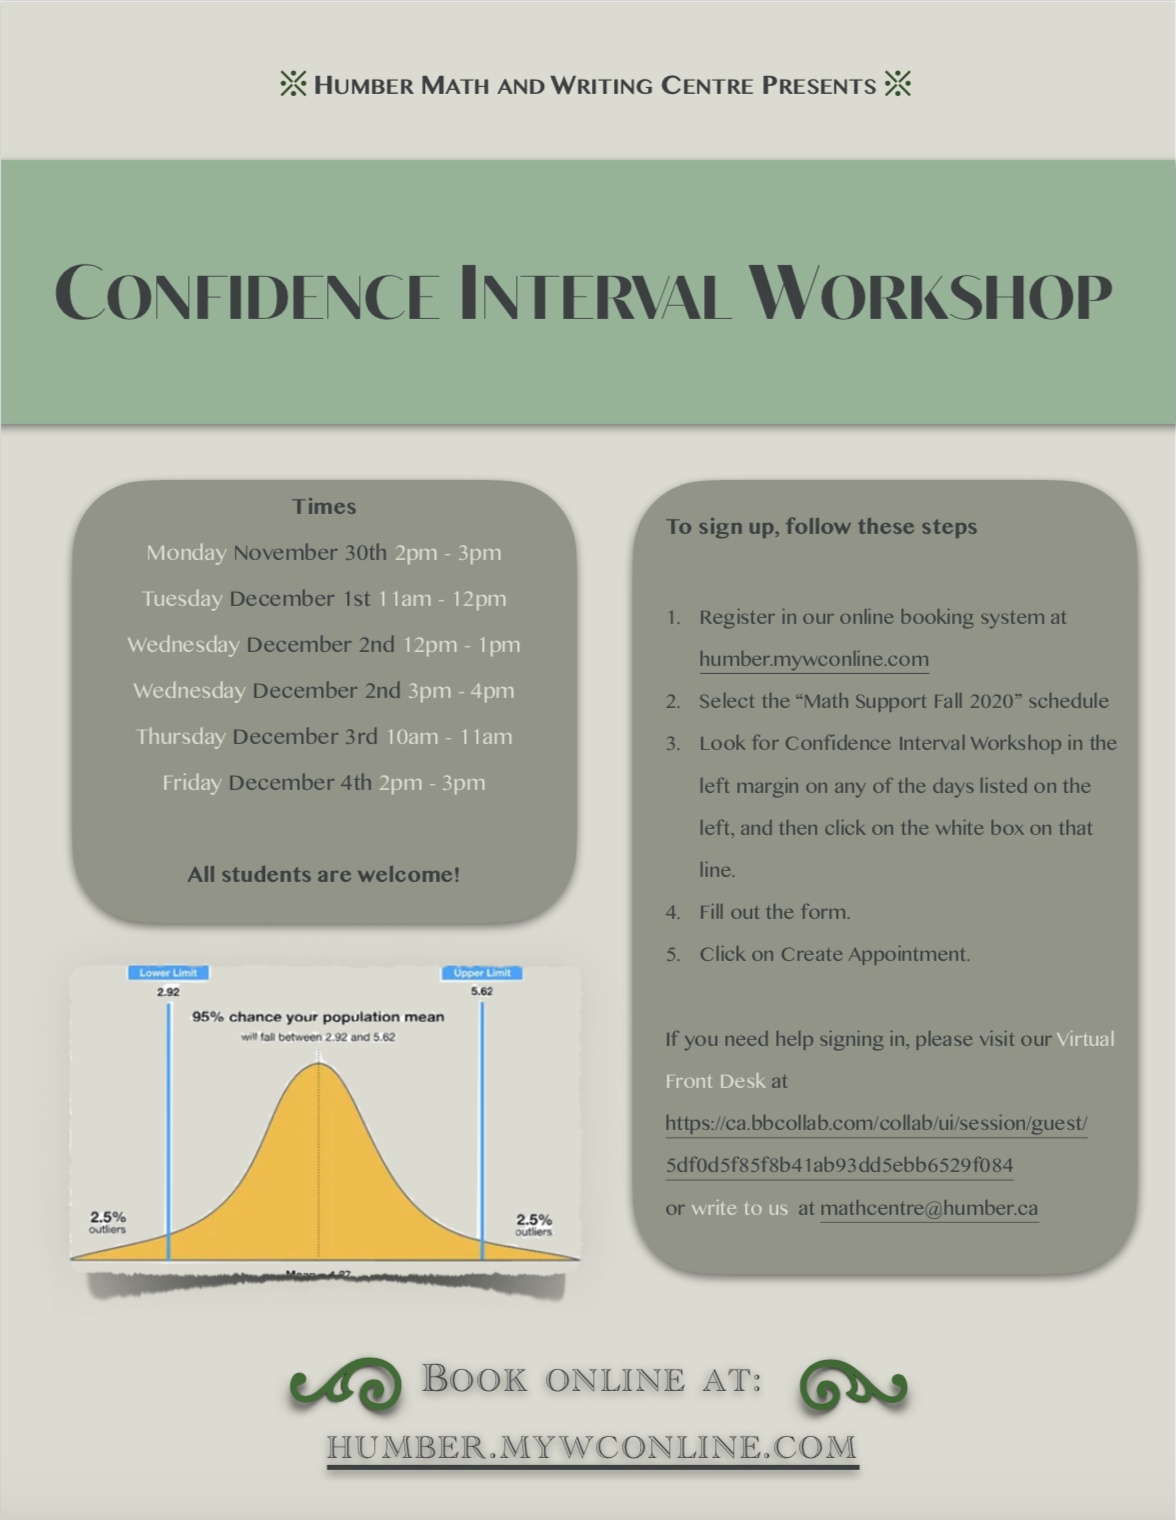 Confidence Interval Workshop Times: Monday November 30th 2pm – 3pm Tuesday December 1st 11am – 12pm Wednesday December 2nd 12pm – 1pm Wednesday December 2nd 3pm – 4pm Thursday December 3rd 10am – 11am Friday December 4th 2pm – 3pm  All students are welcome!  To sign up, register in our online booking system at https://humber.mywconline.com/. Email us mathcentre@humber.ca if you have any questions!